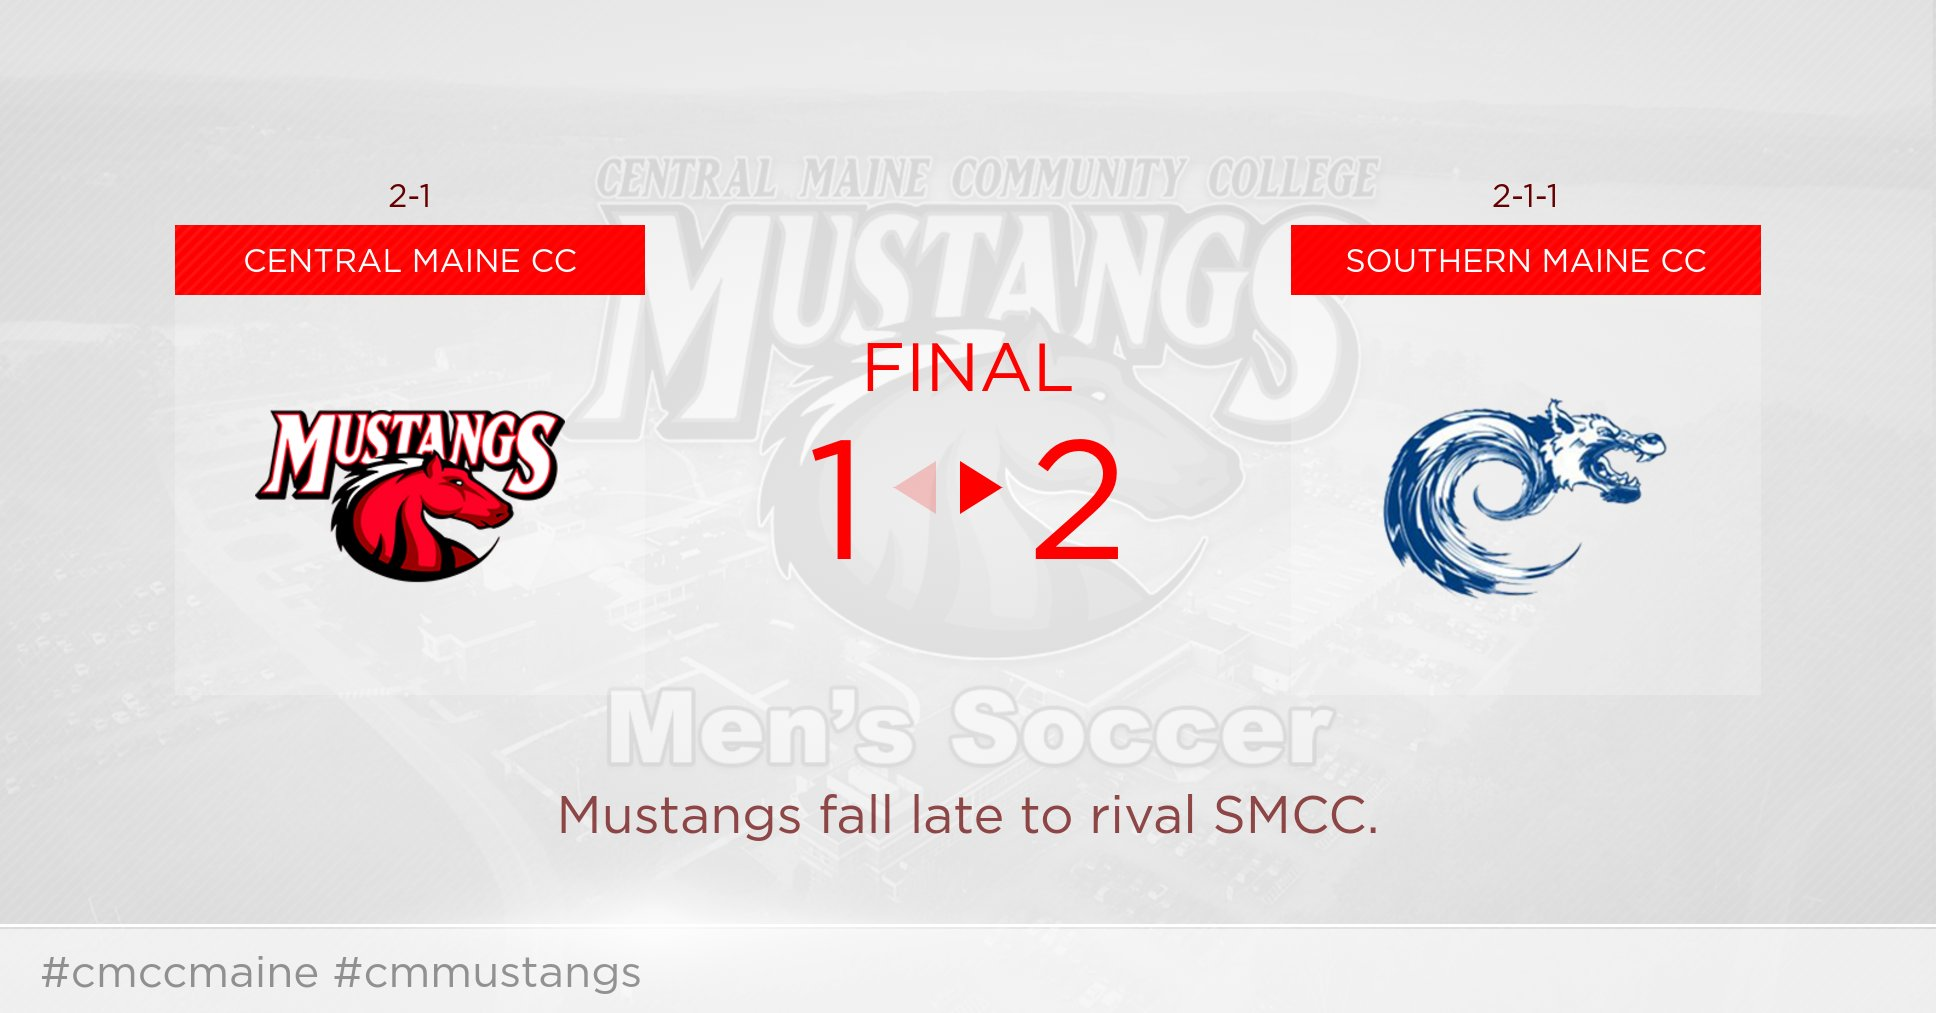 Mustangs fall to SMCC